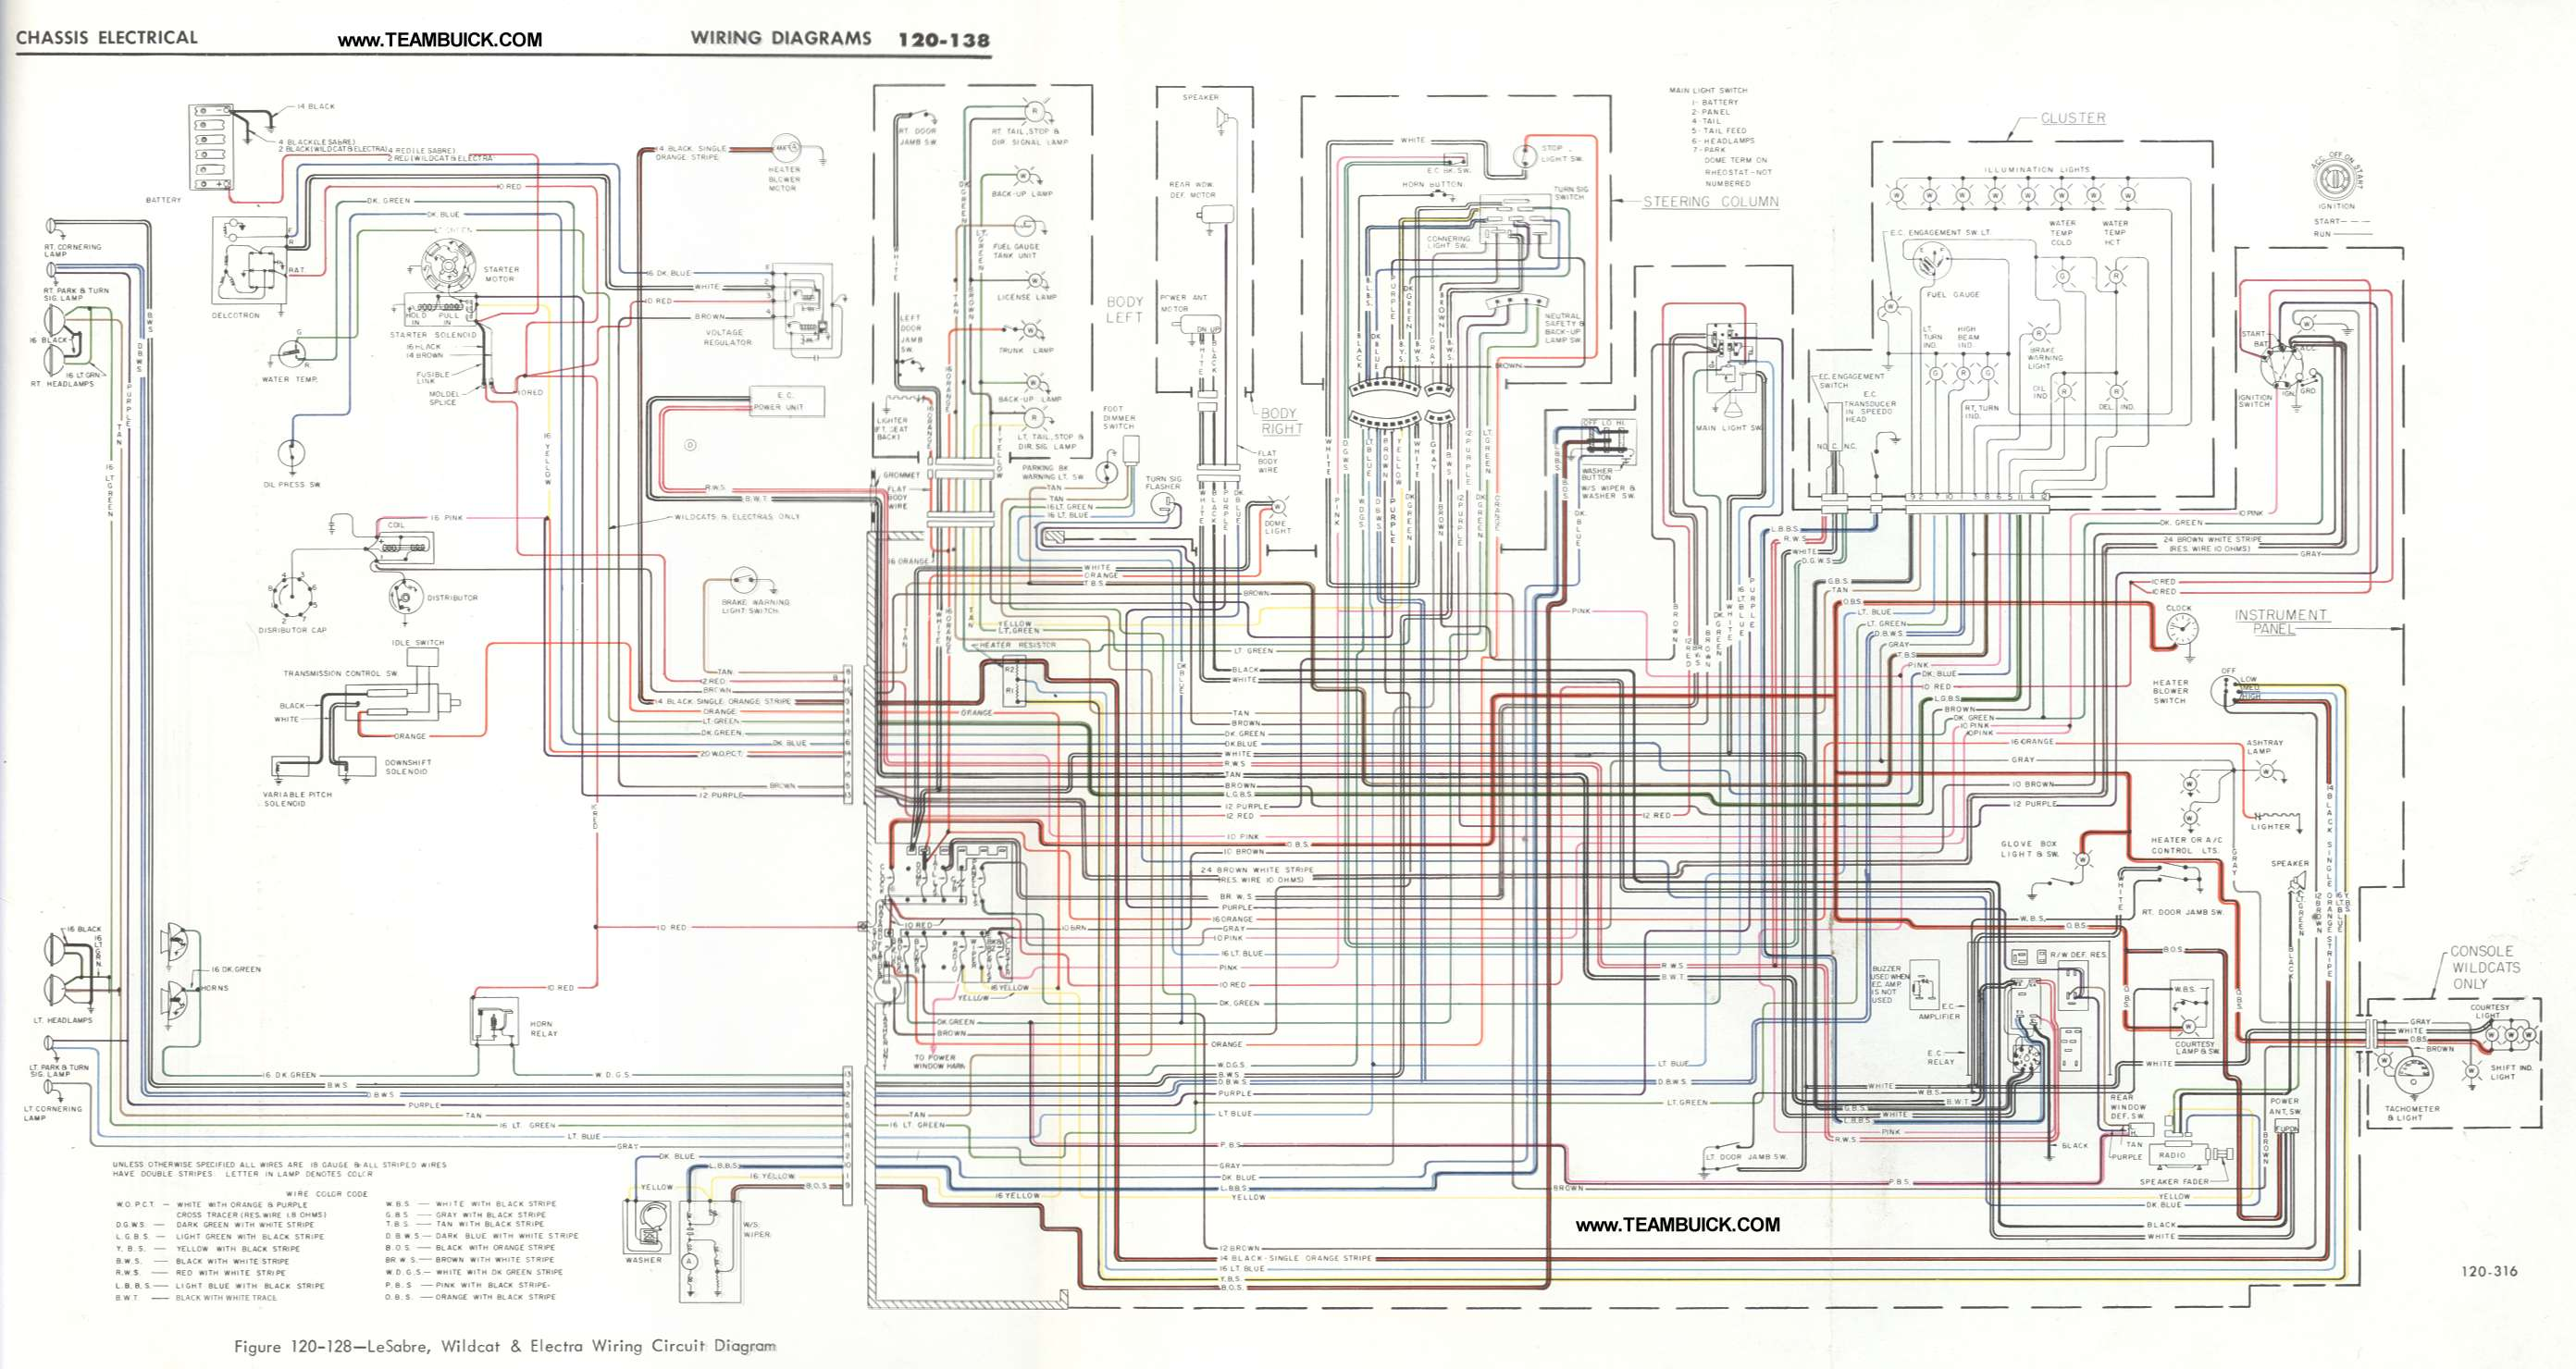 1970 buick gs 455 wiring diagram car wiring diagrams explained \u2022 1970 buick gs 455 engine 1967 buick special wiring diagram explained wiring diagrams rh sbsun co buick stage 1 1970 buick